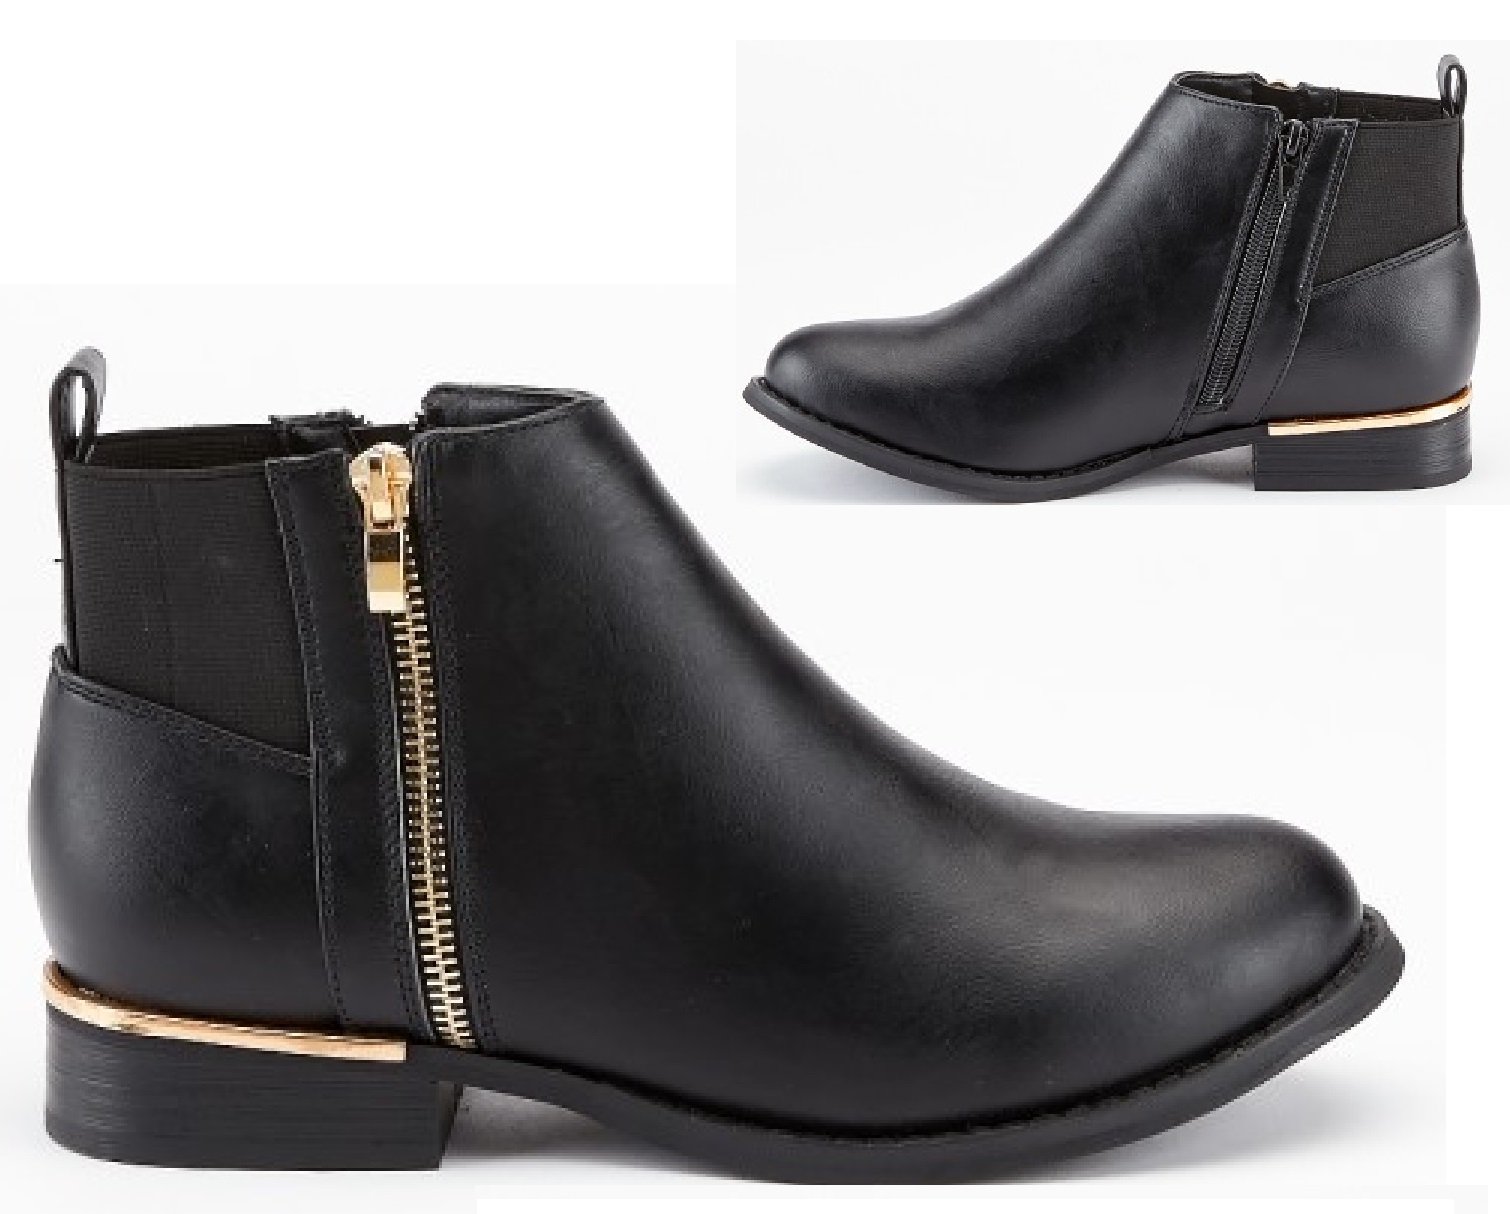 64f73fa7027 Details about LADIES WOMENS BLACK LOW HEEL FLAT CHELSEA GOLD ZIP UP ANKLE  SHOES BOOTS SIZE 3-8